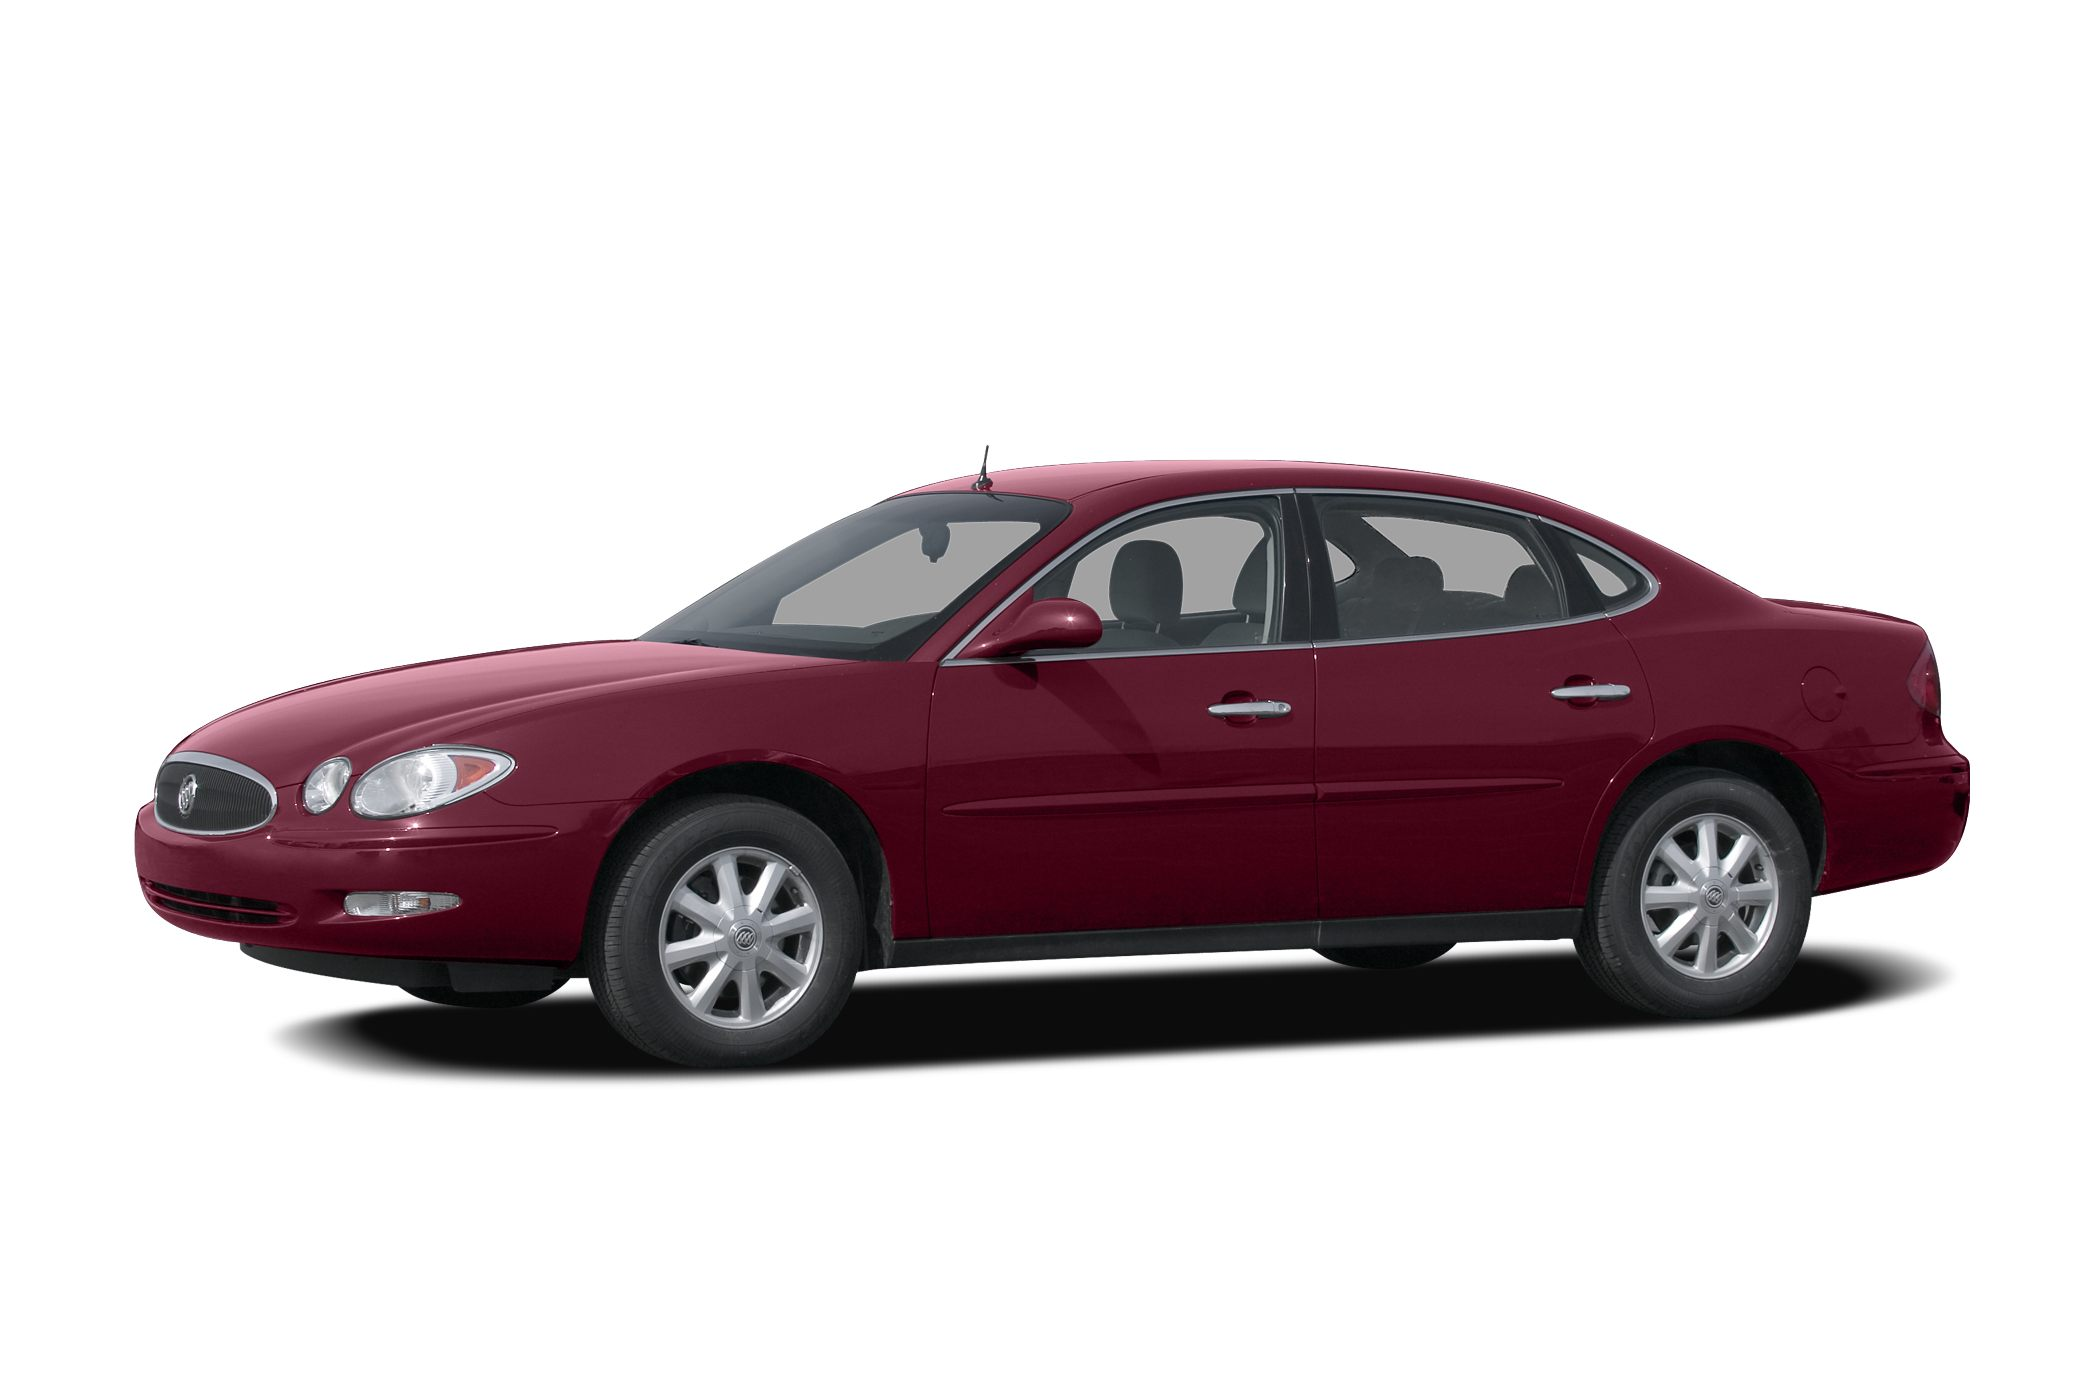 2008 Buick LaCrosse CXL This Gray 2008 Buick LaCrosse CXL might be just the sedan for you It has